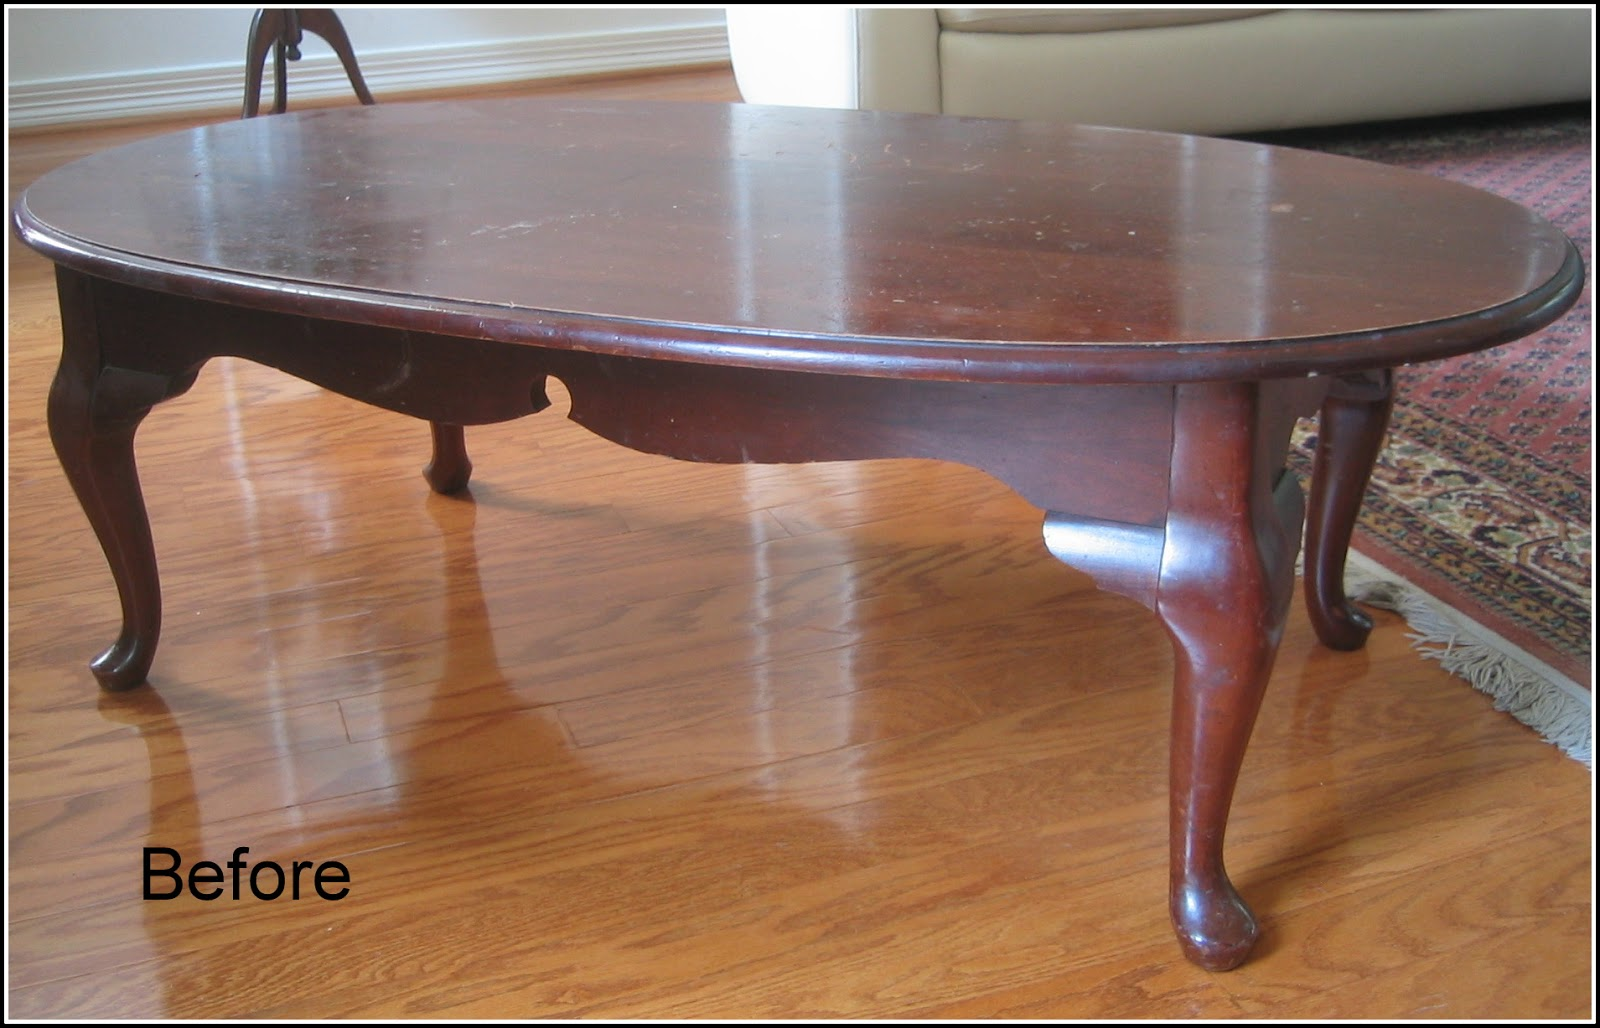 Just Judy : A coffee table makeover...Finally!